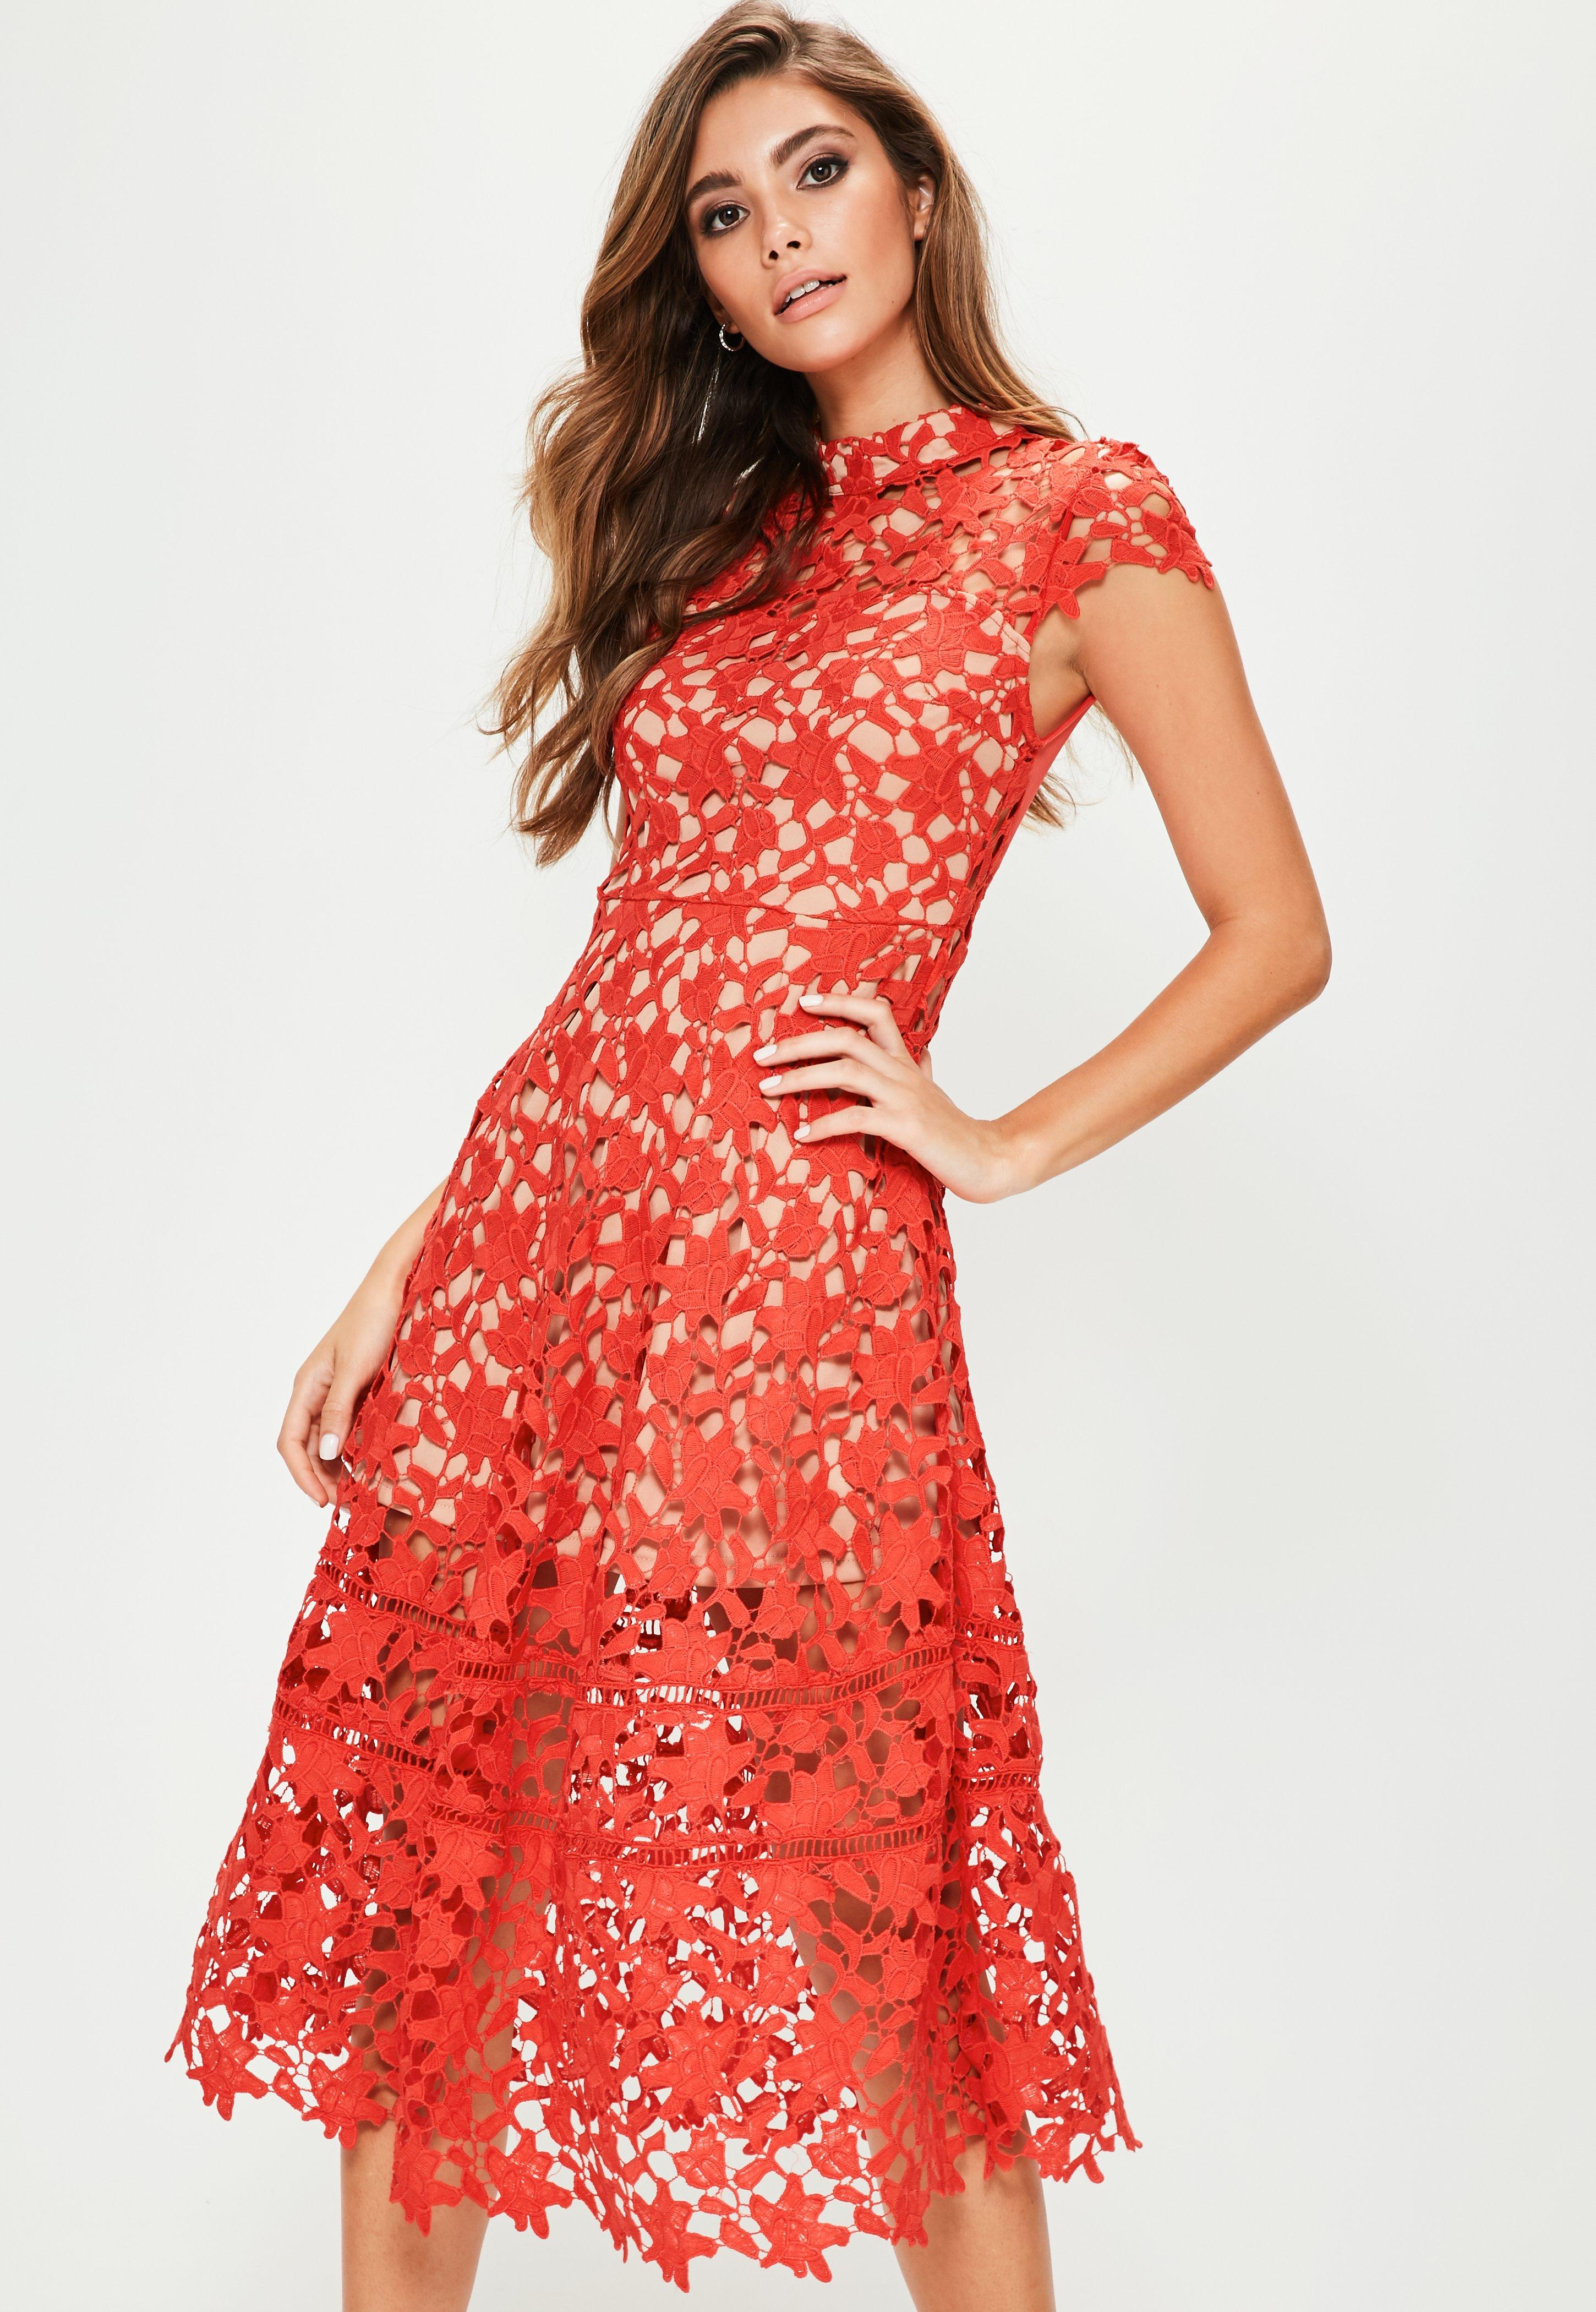 Multipurpose Red Short Sleeve Lace Midi Skater Dress Red Short Sleeve Lace Midi Skater Dress Red Lace Dress 16w Red Lace Dress Size wedding dress Red Lace Dress